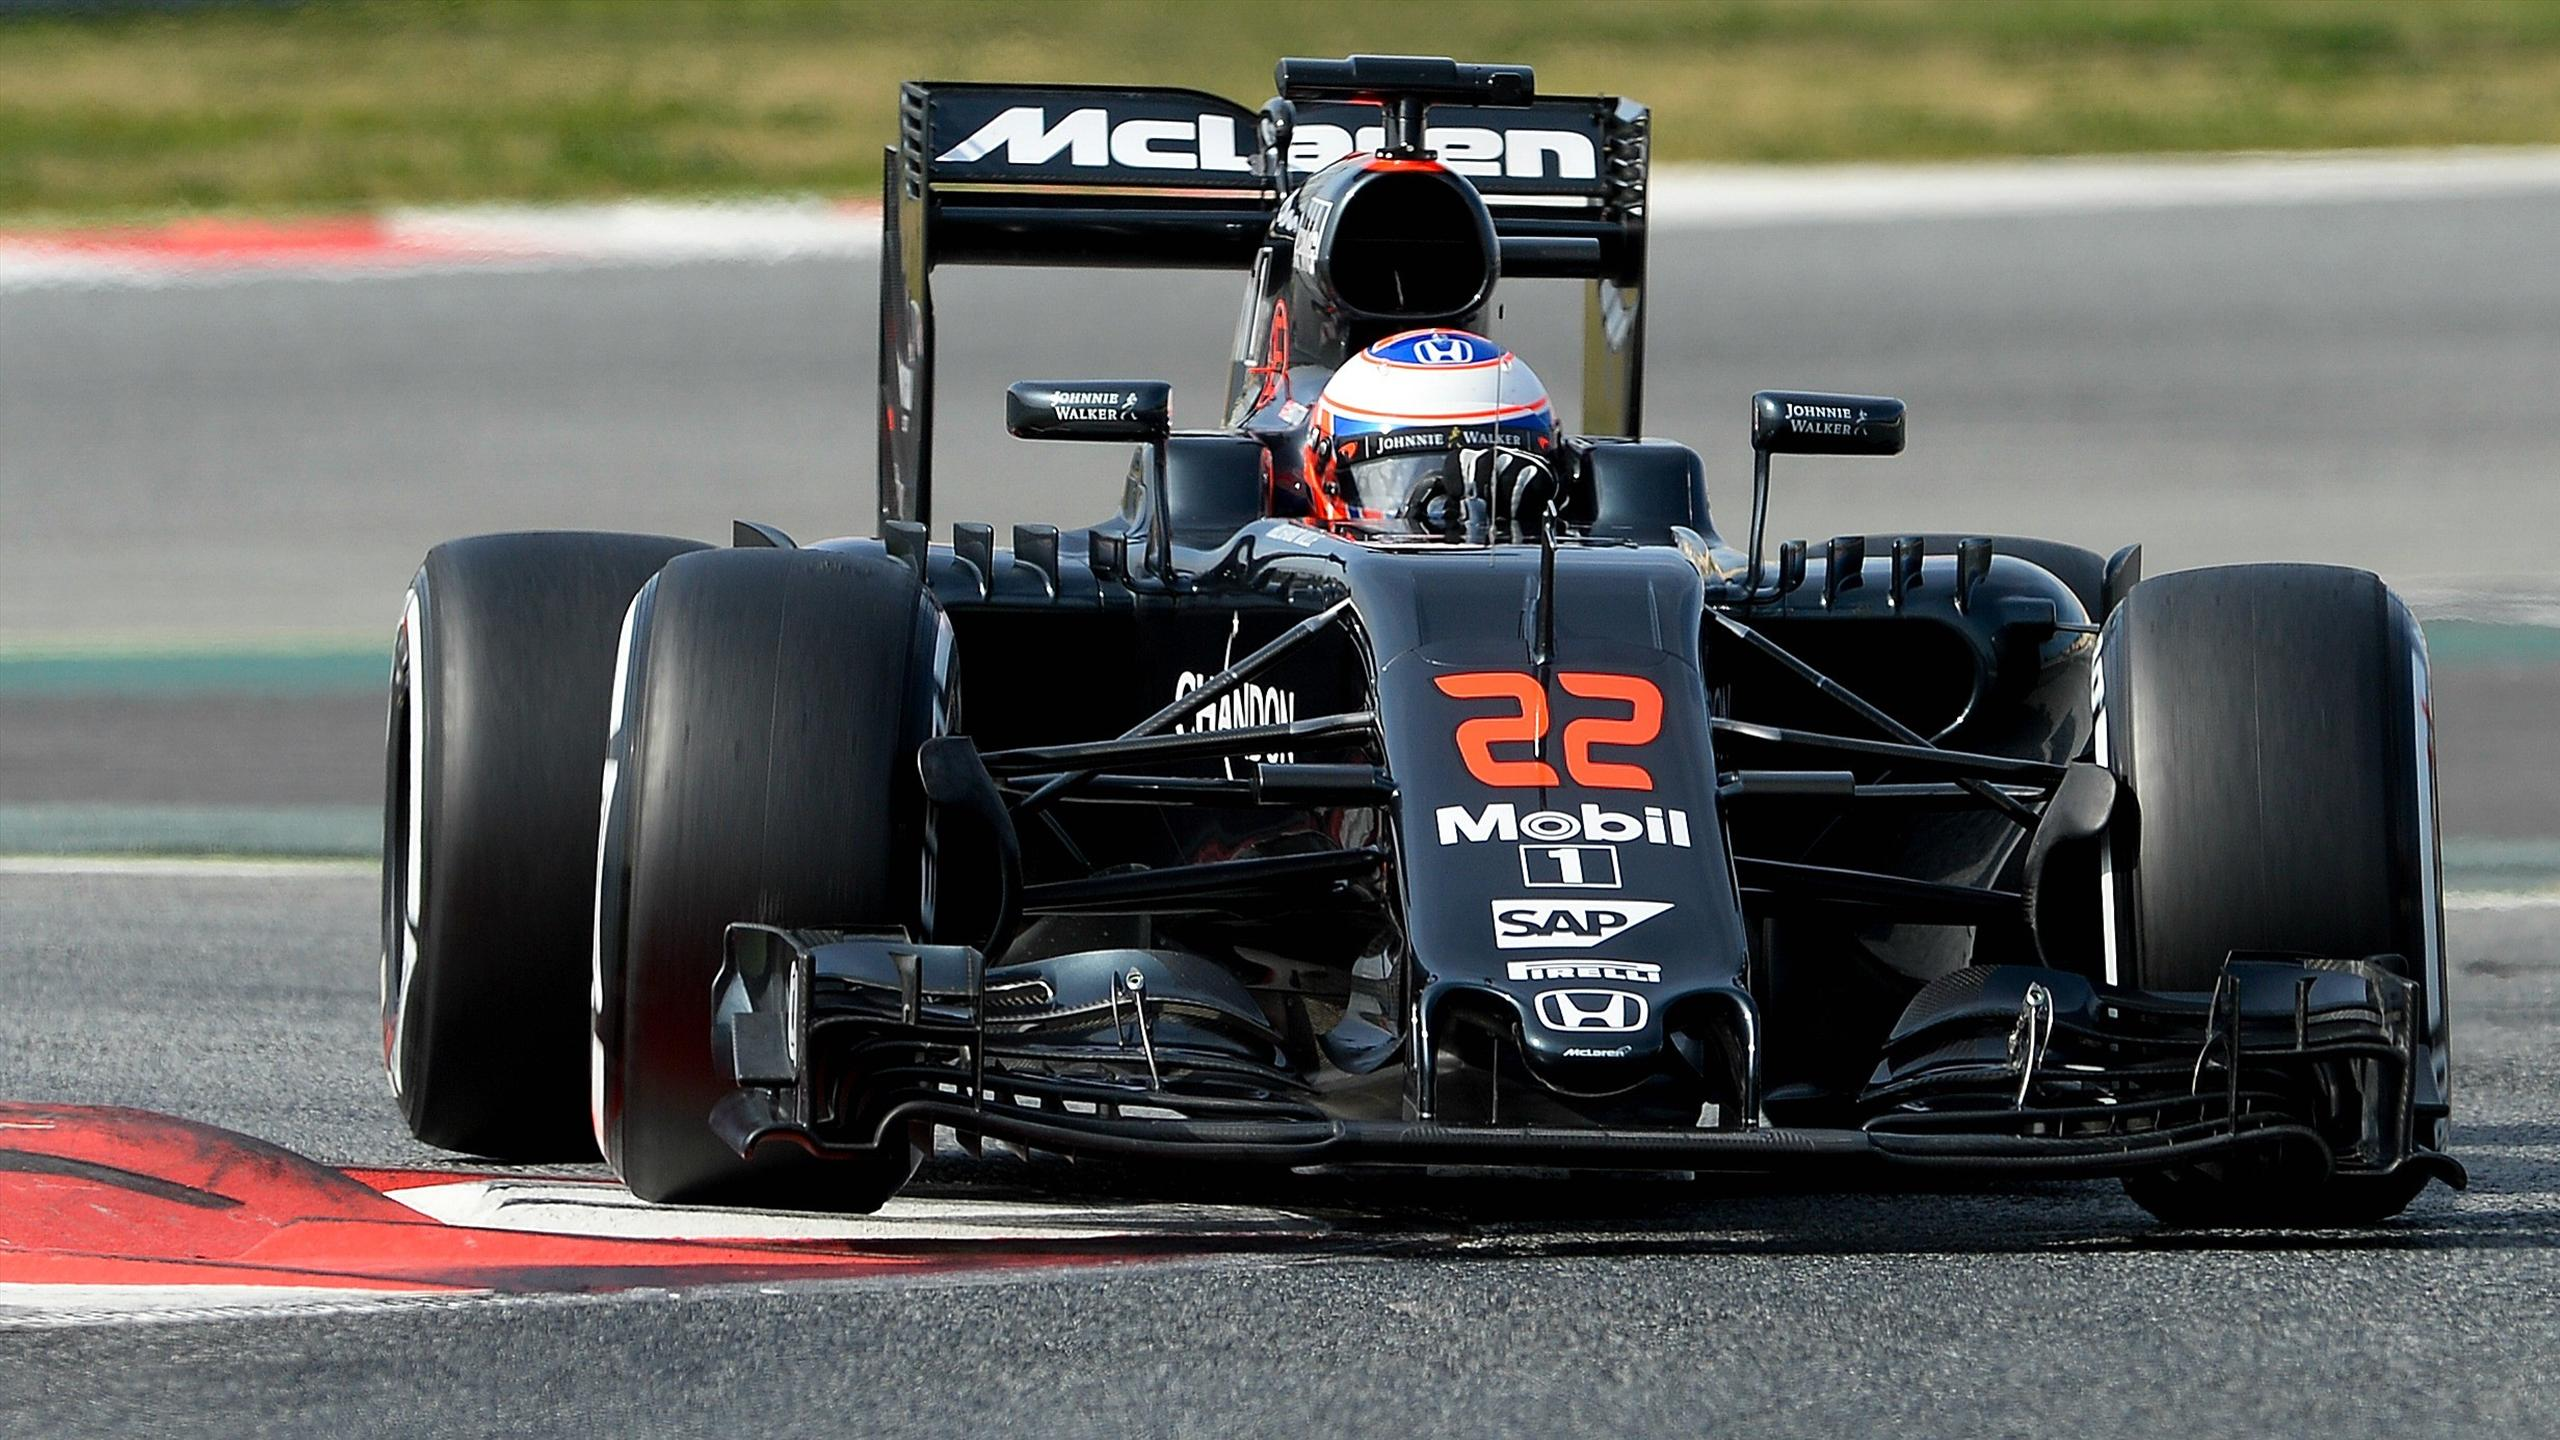 Jenson Button (McLaren) - Tests Montmelo 2016